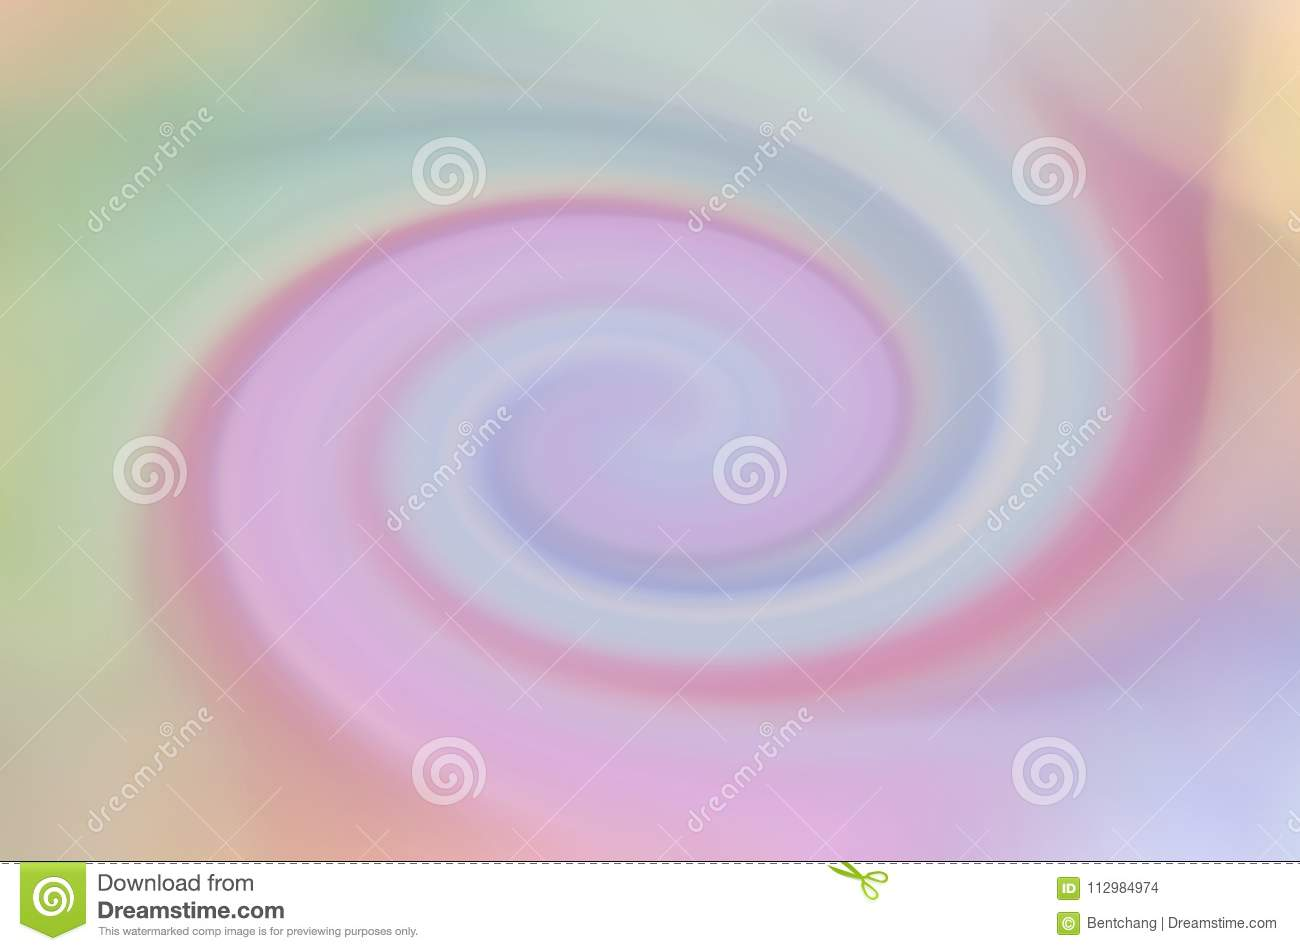 Illustrations of motion. For wallpaper or graphic design. Blur, red, artwork, macro & colorful.